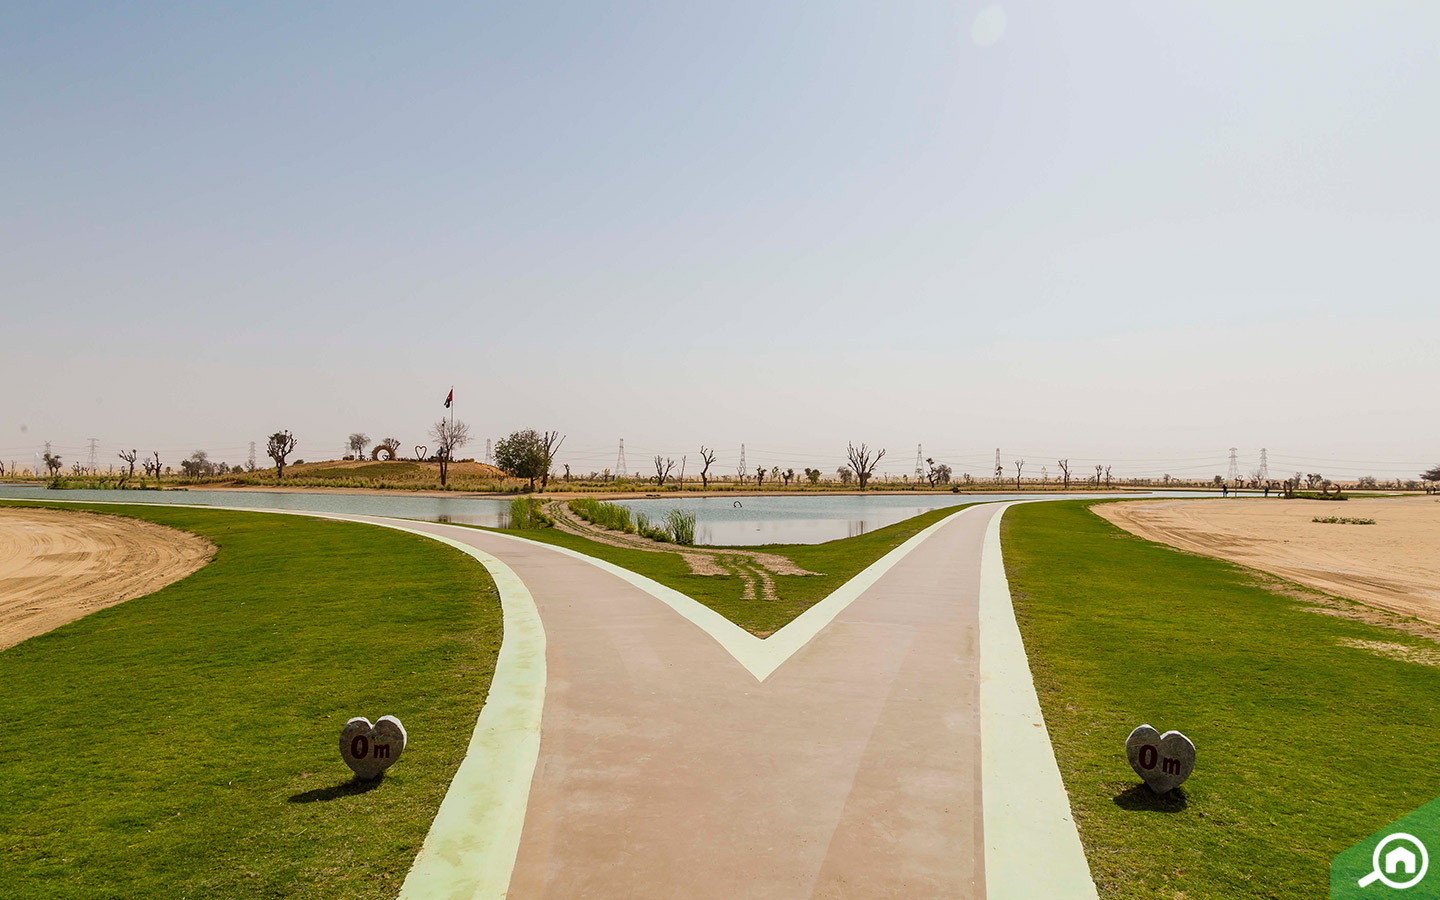 Top 5 Things To Do At Al Qudra: Love Lake, Wildlife & More ...